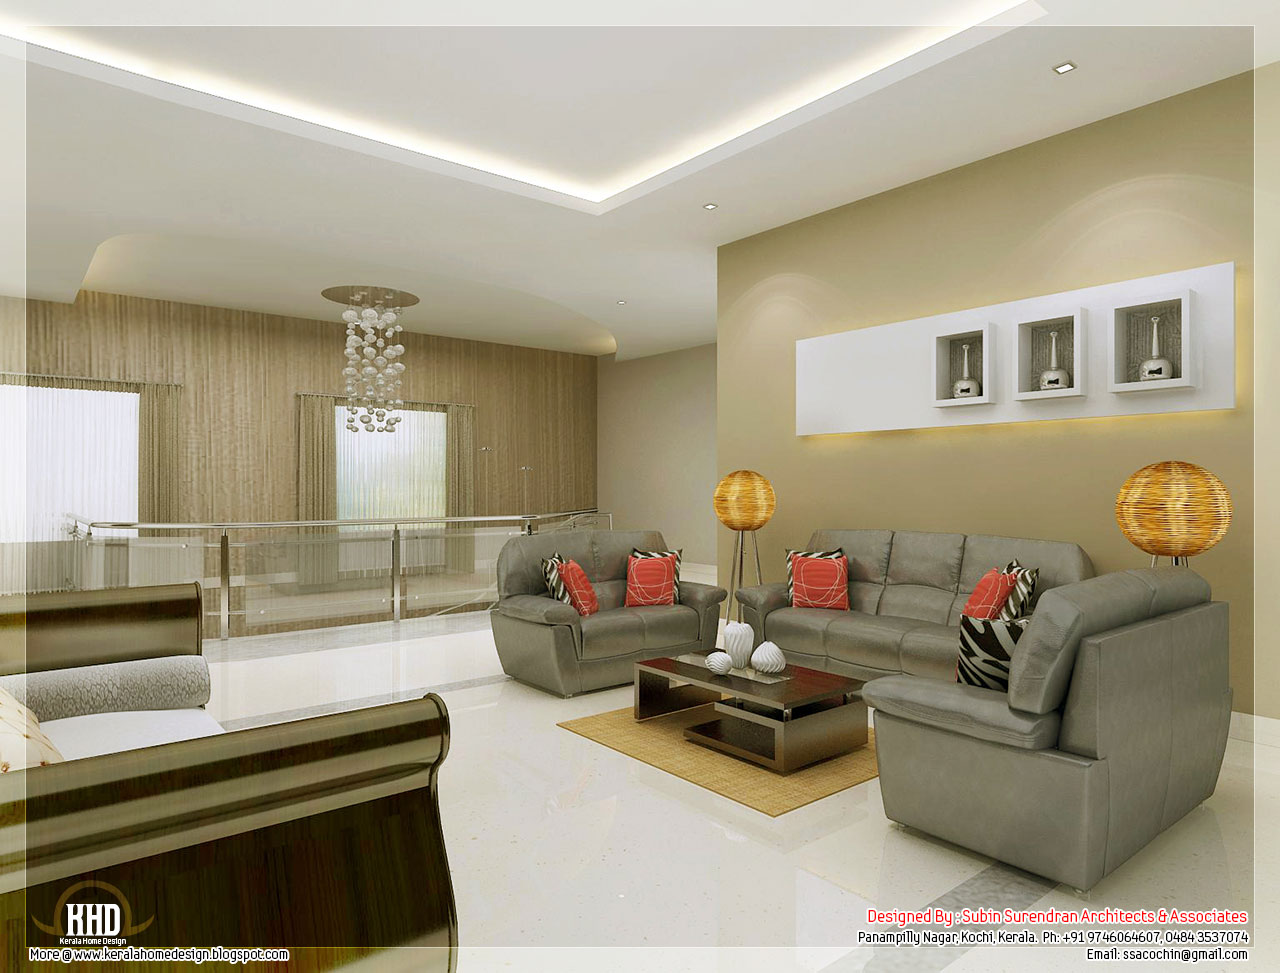 Incredible Living Room Interior Design 1280 x 973 · 182 kB · jpeg